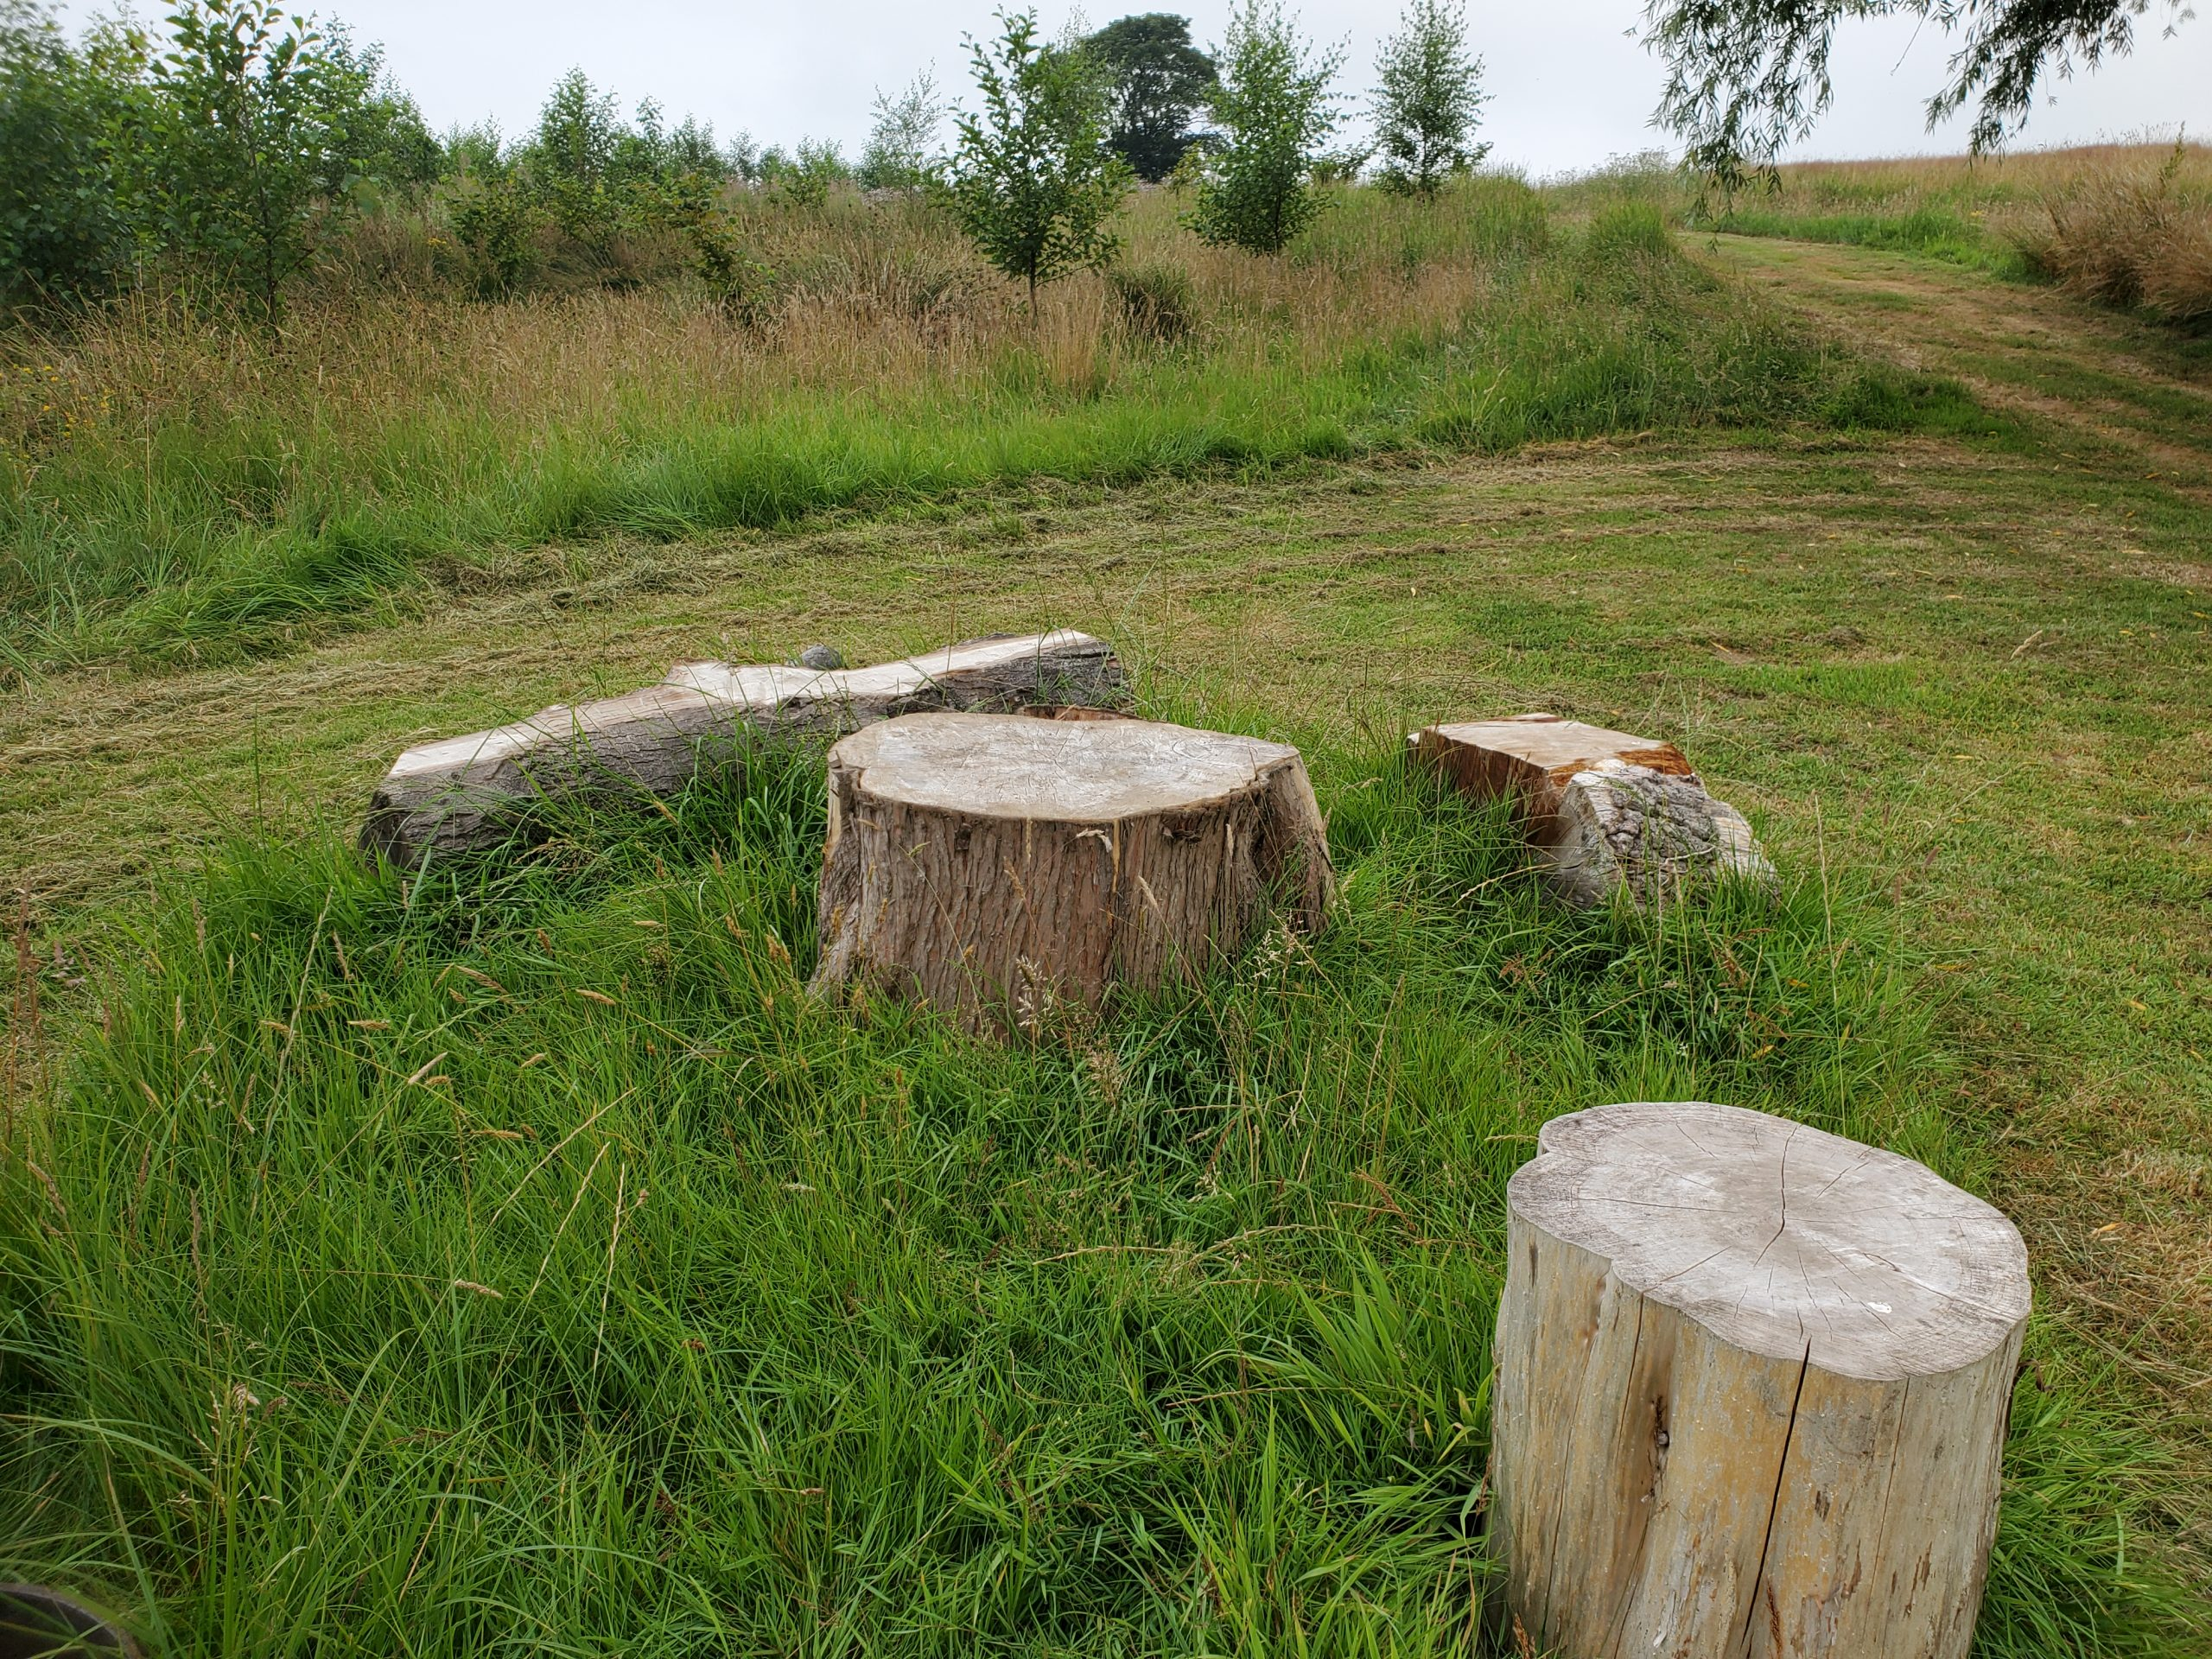 Log benches and table for picnics